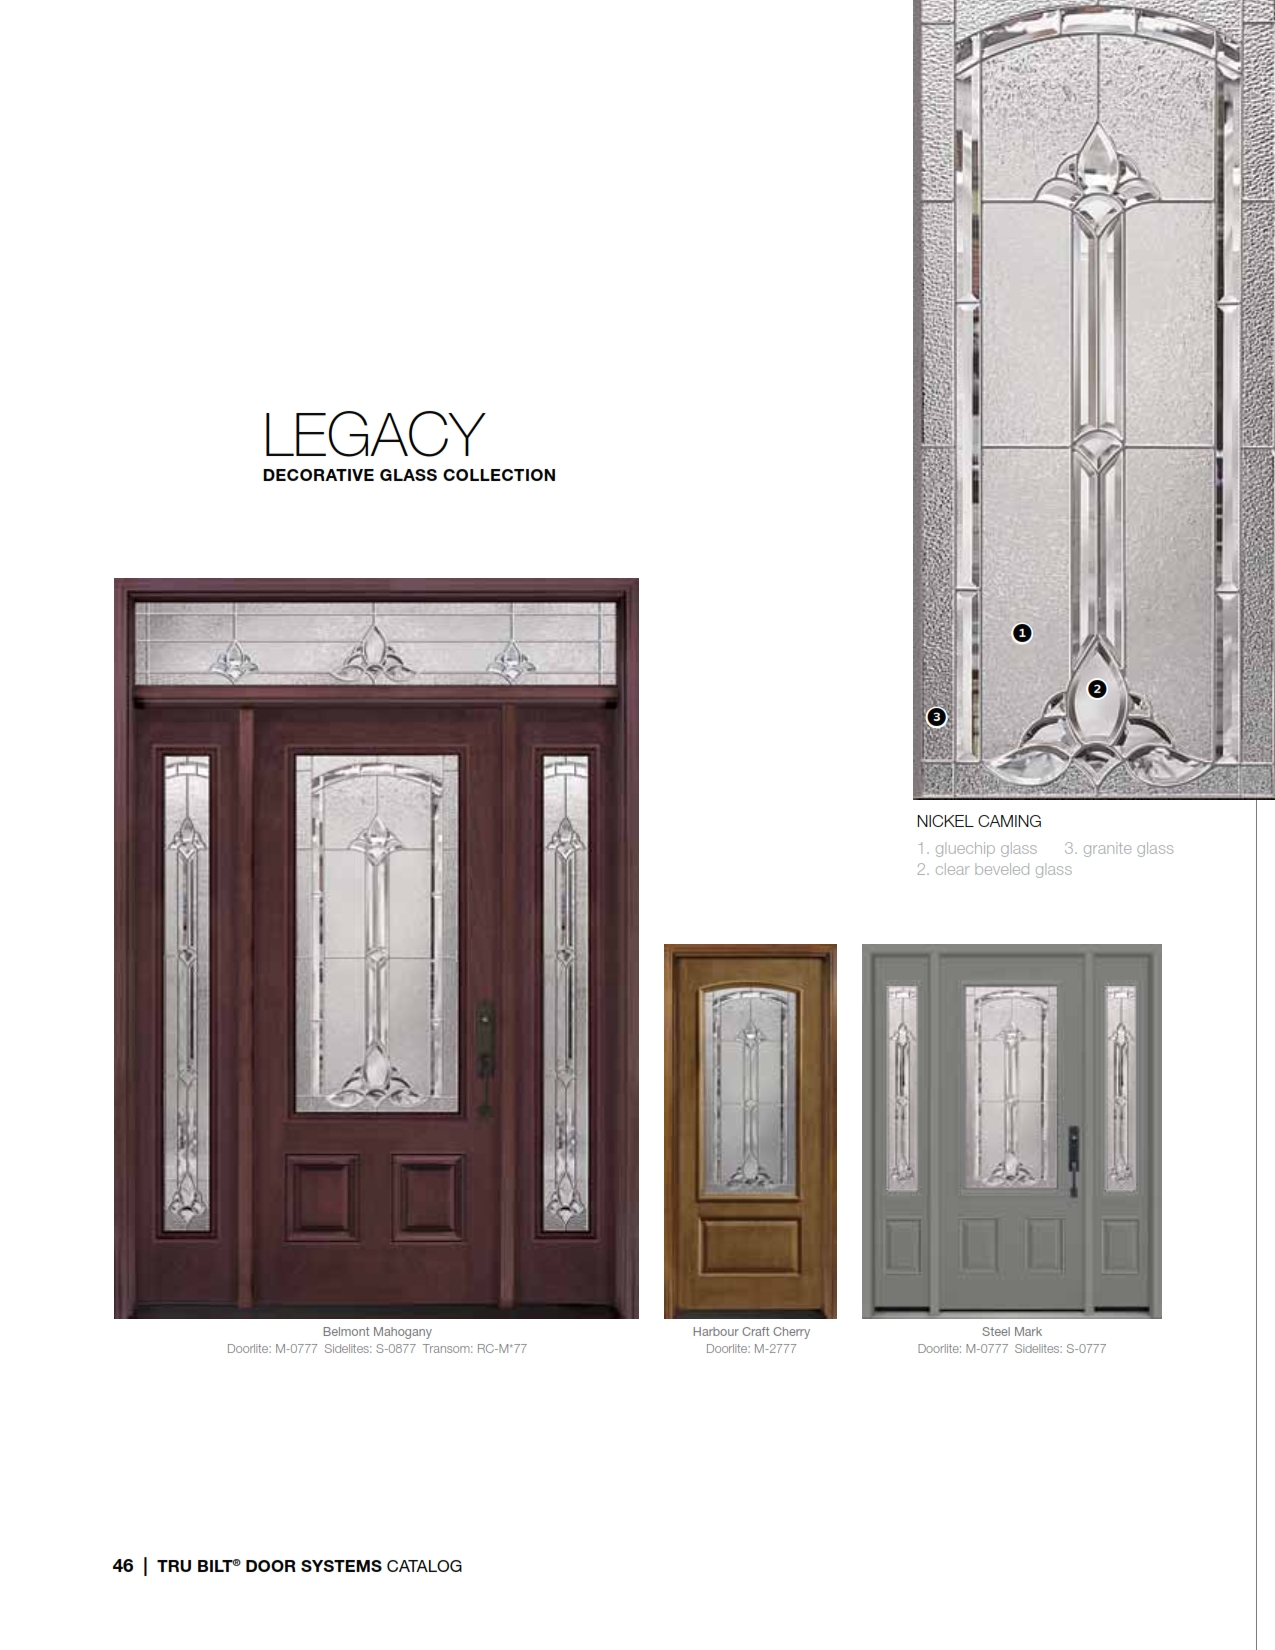 1650 #795C3A Steel Fiberglass Front Door Systems Trutech 046 save image Steel Front Doors 40871275